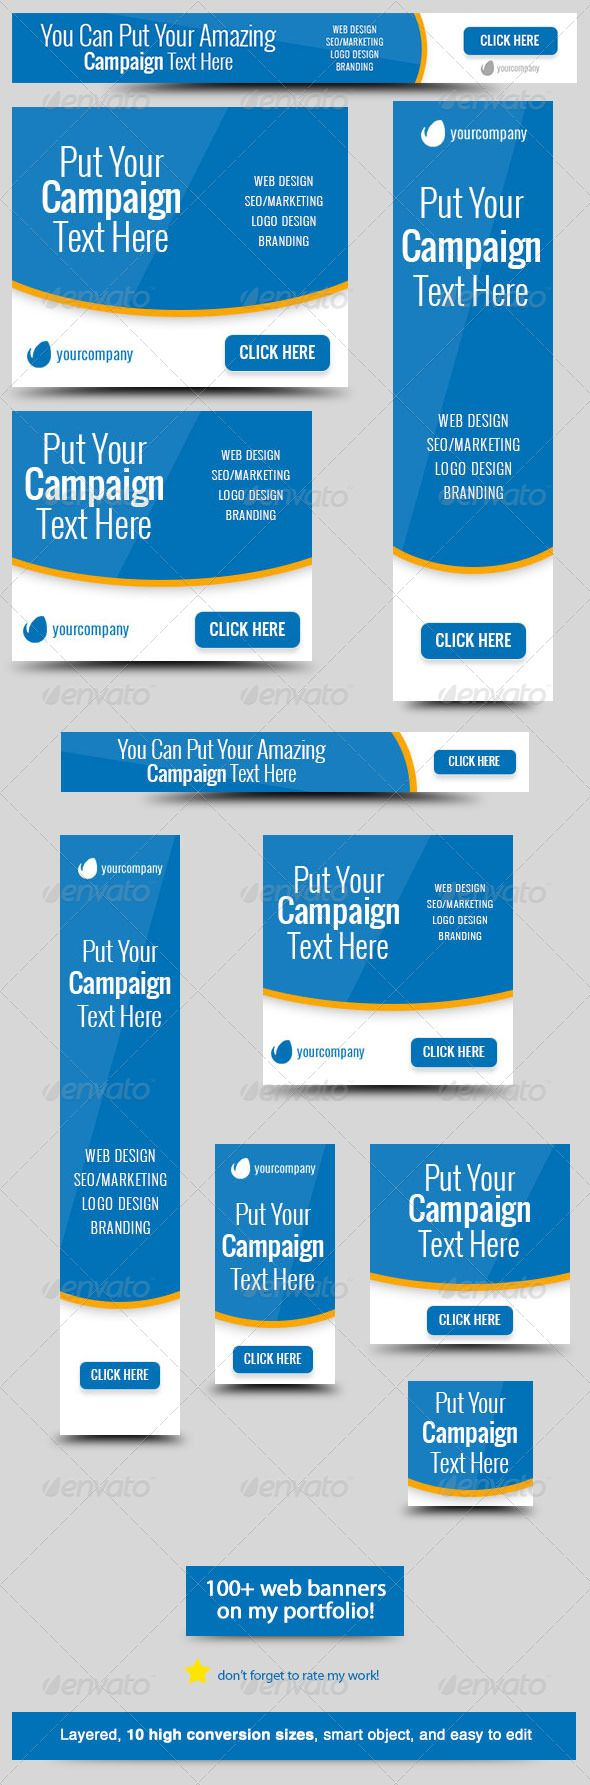 17 Best images about Web Banners on Pinterest | Sale banner, Ad ...